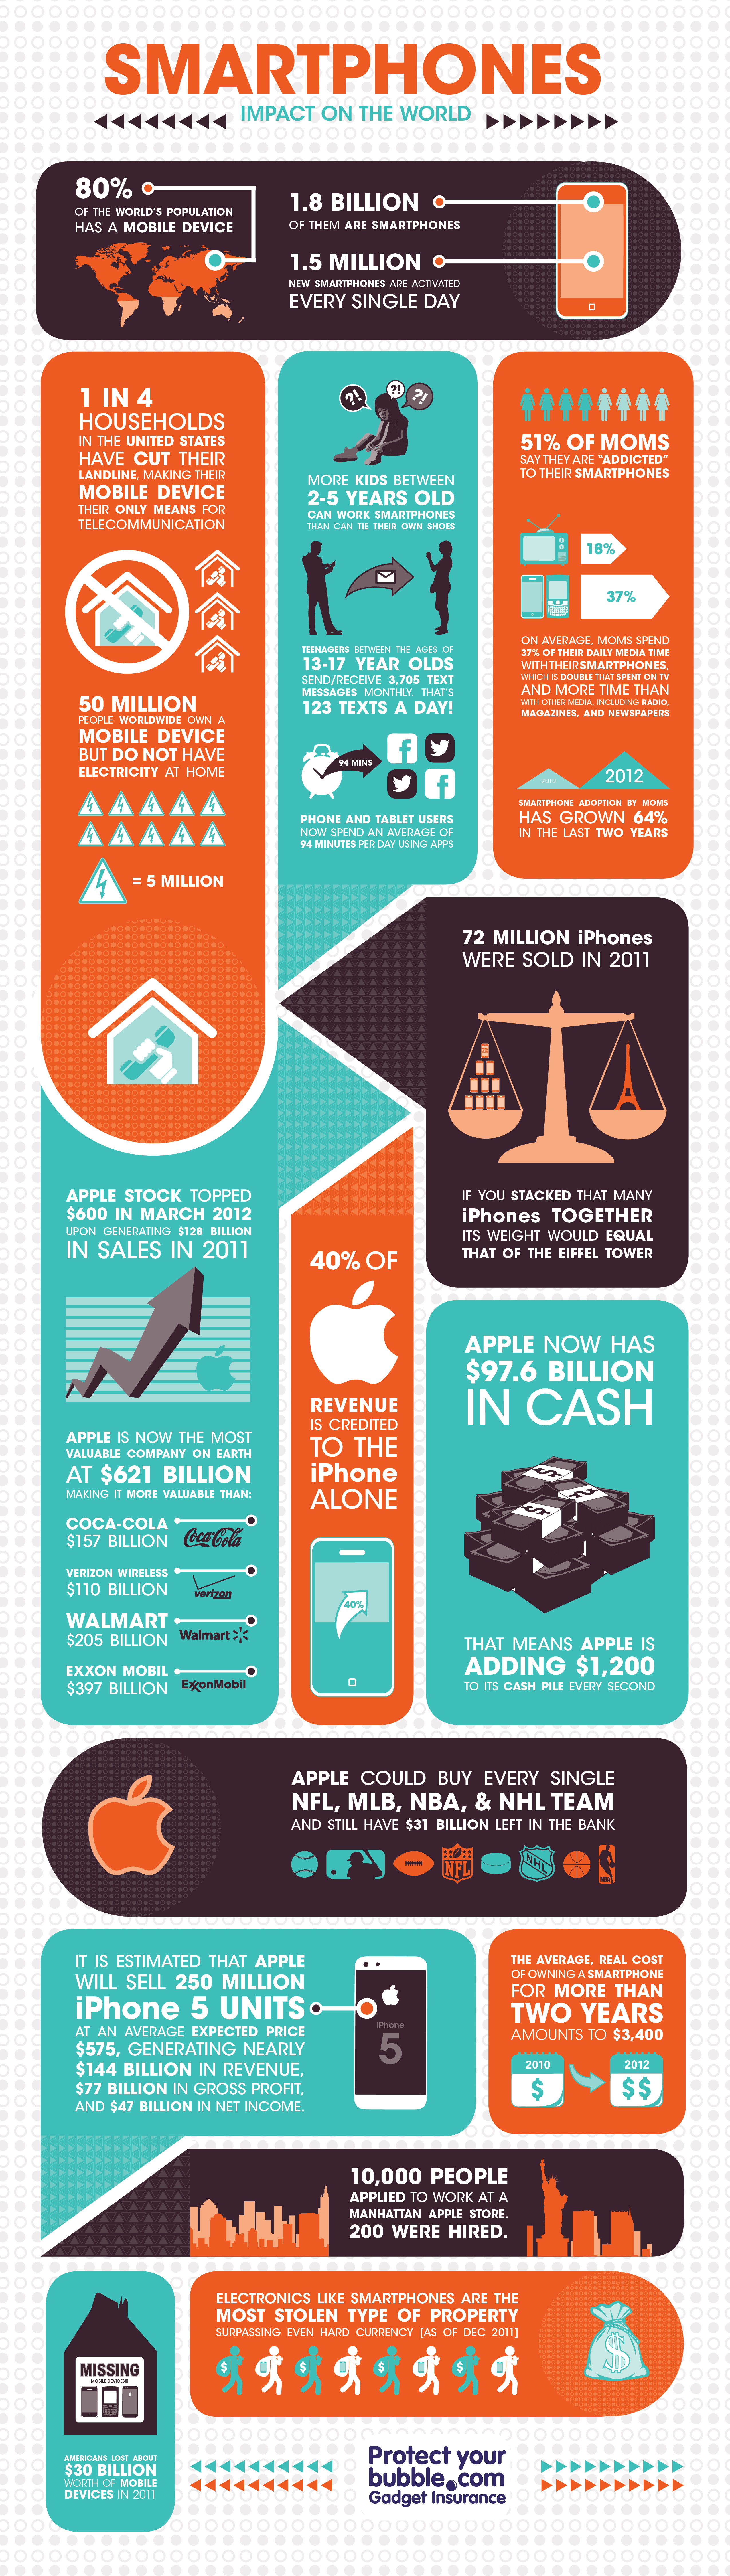 Apple financial gain infographic infographic marketing